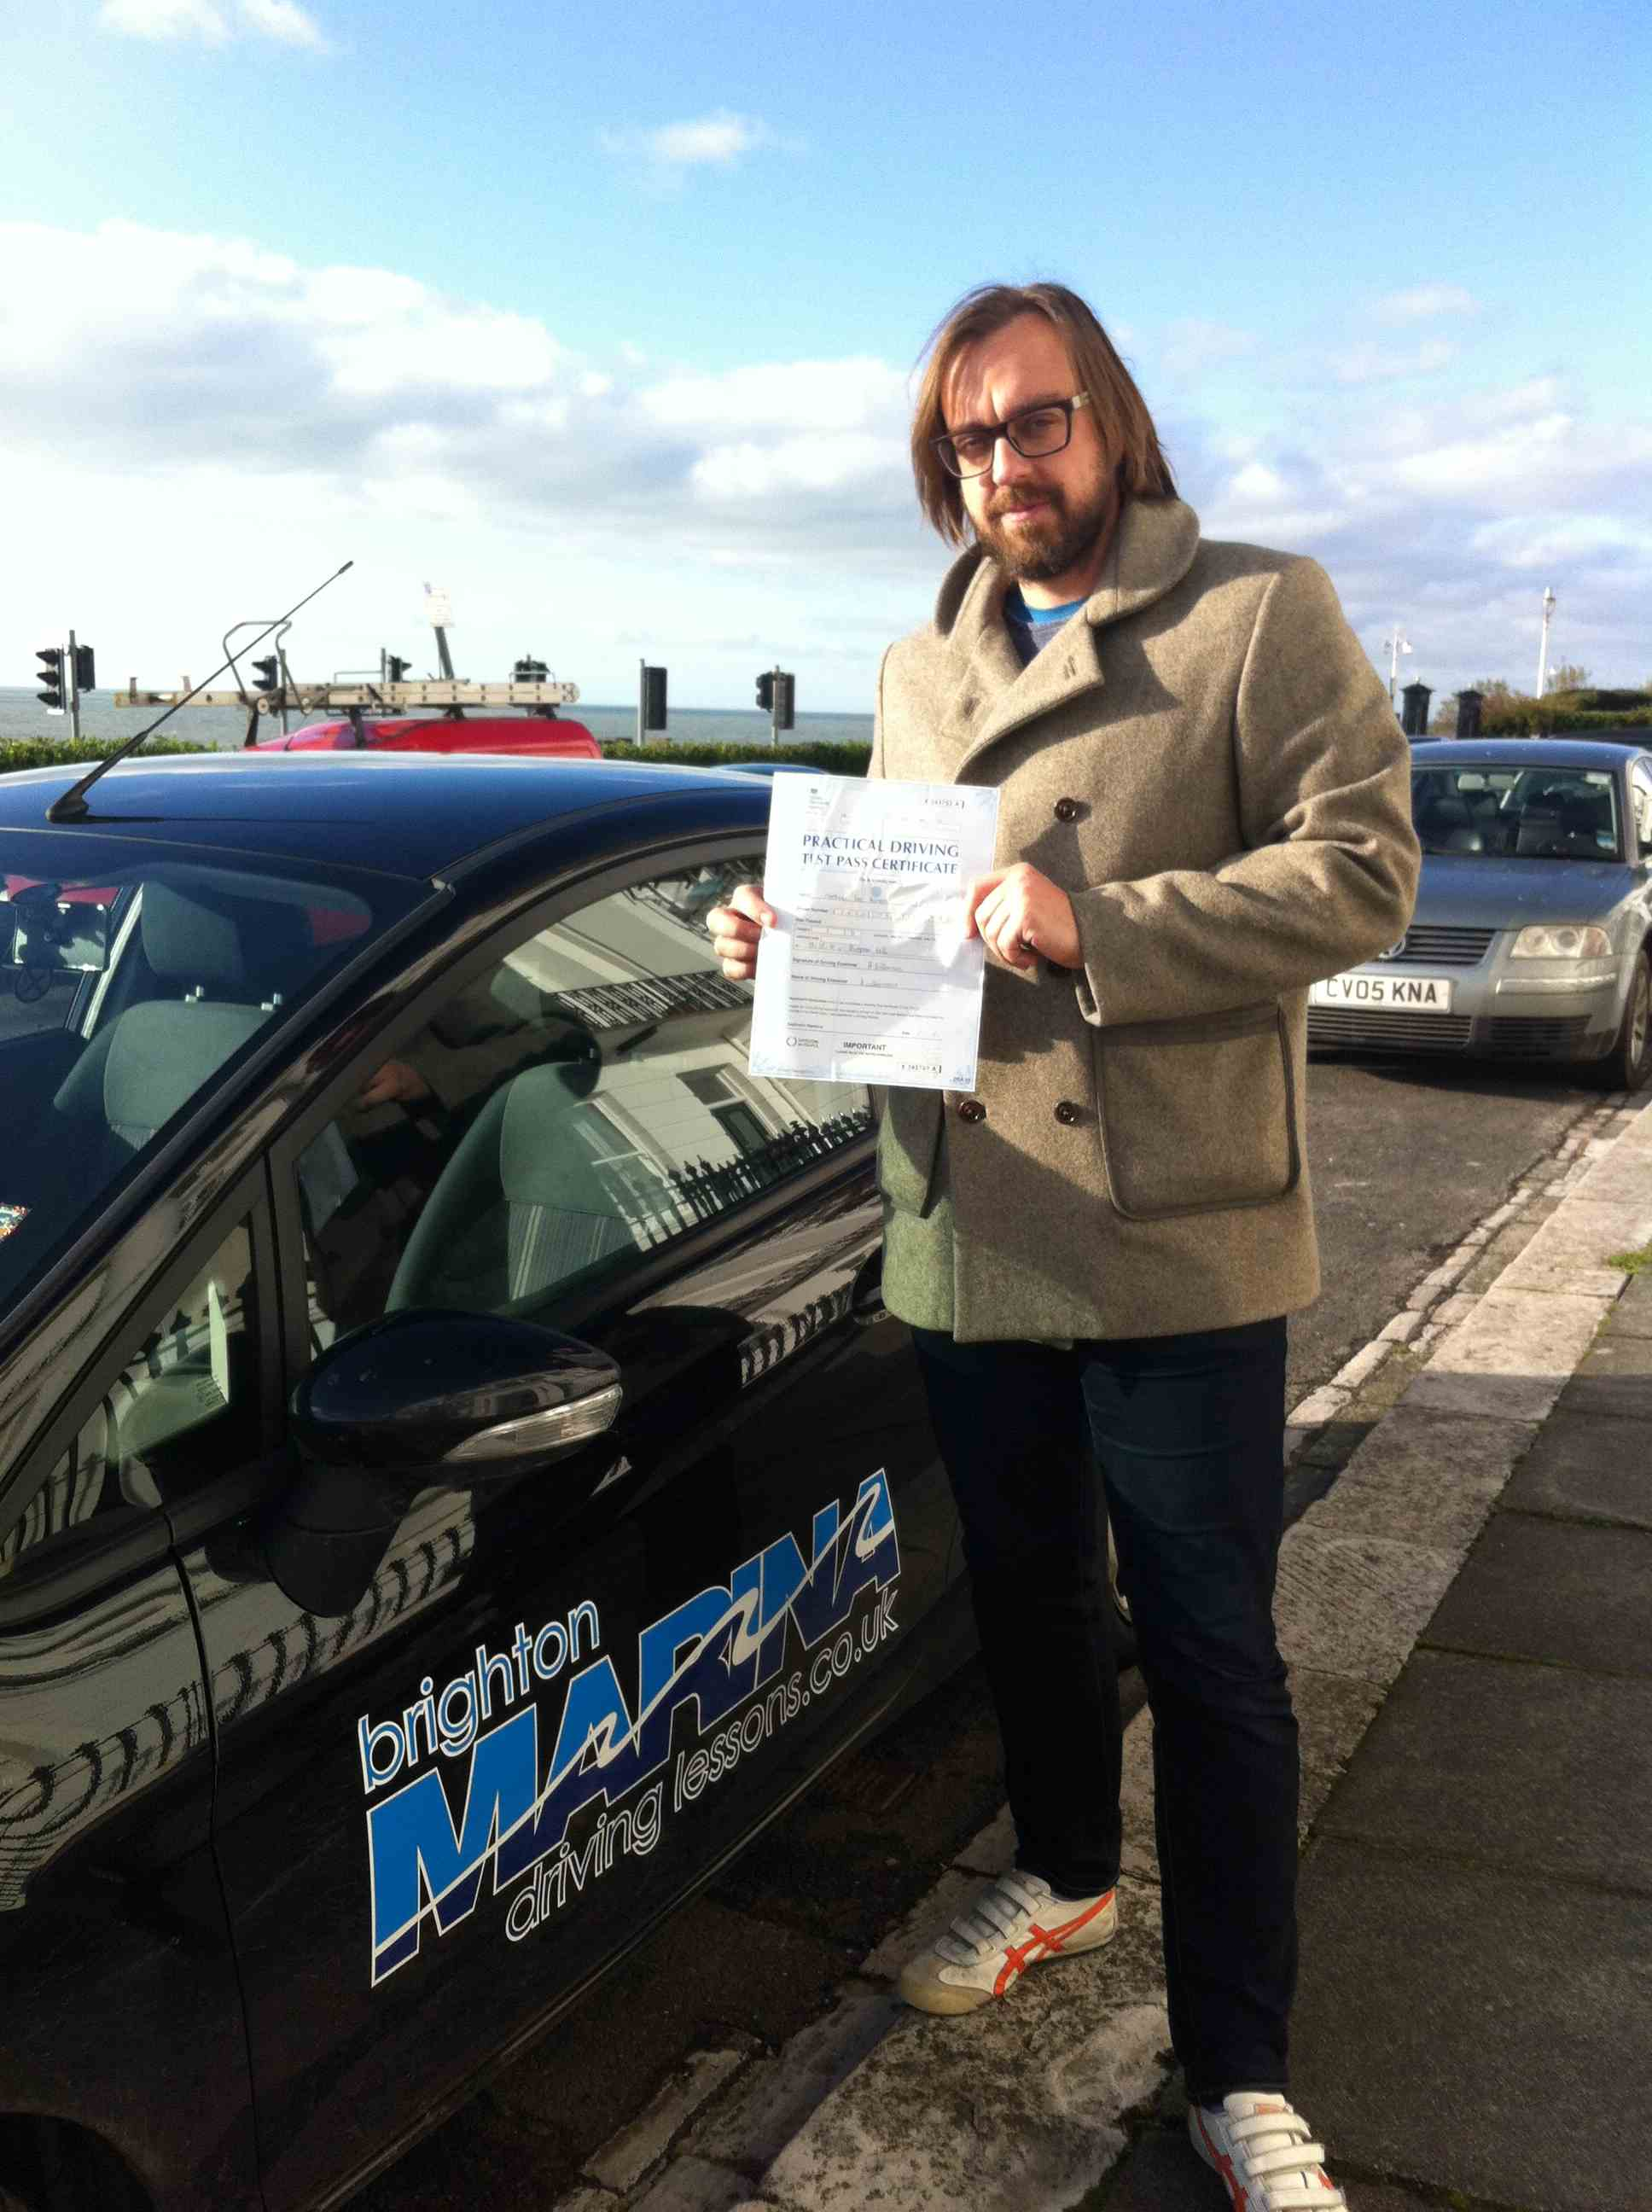 Brighton Marina Driving Lessons 6 Hours For Just 9000